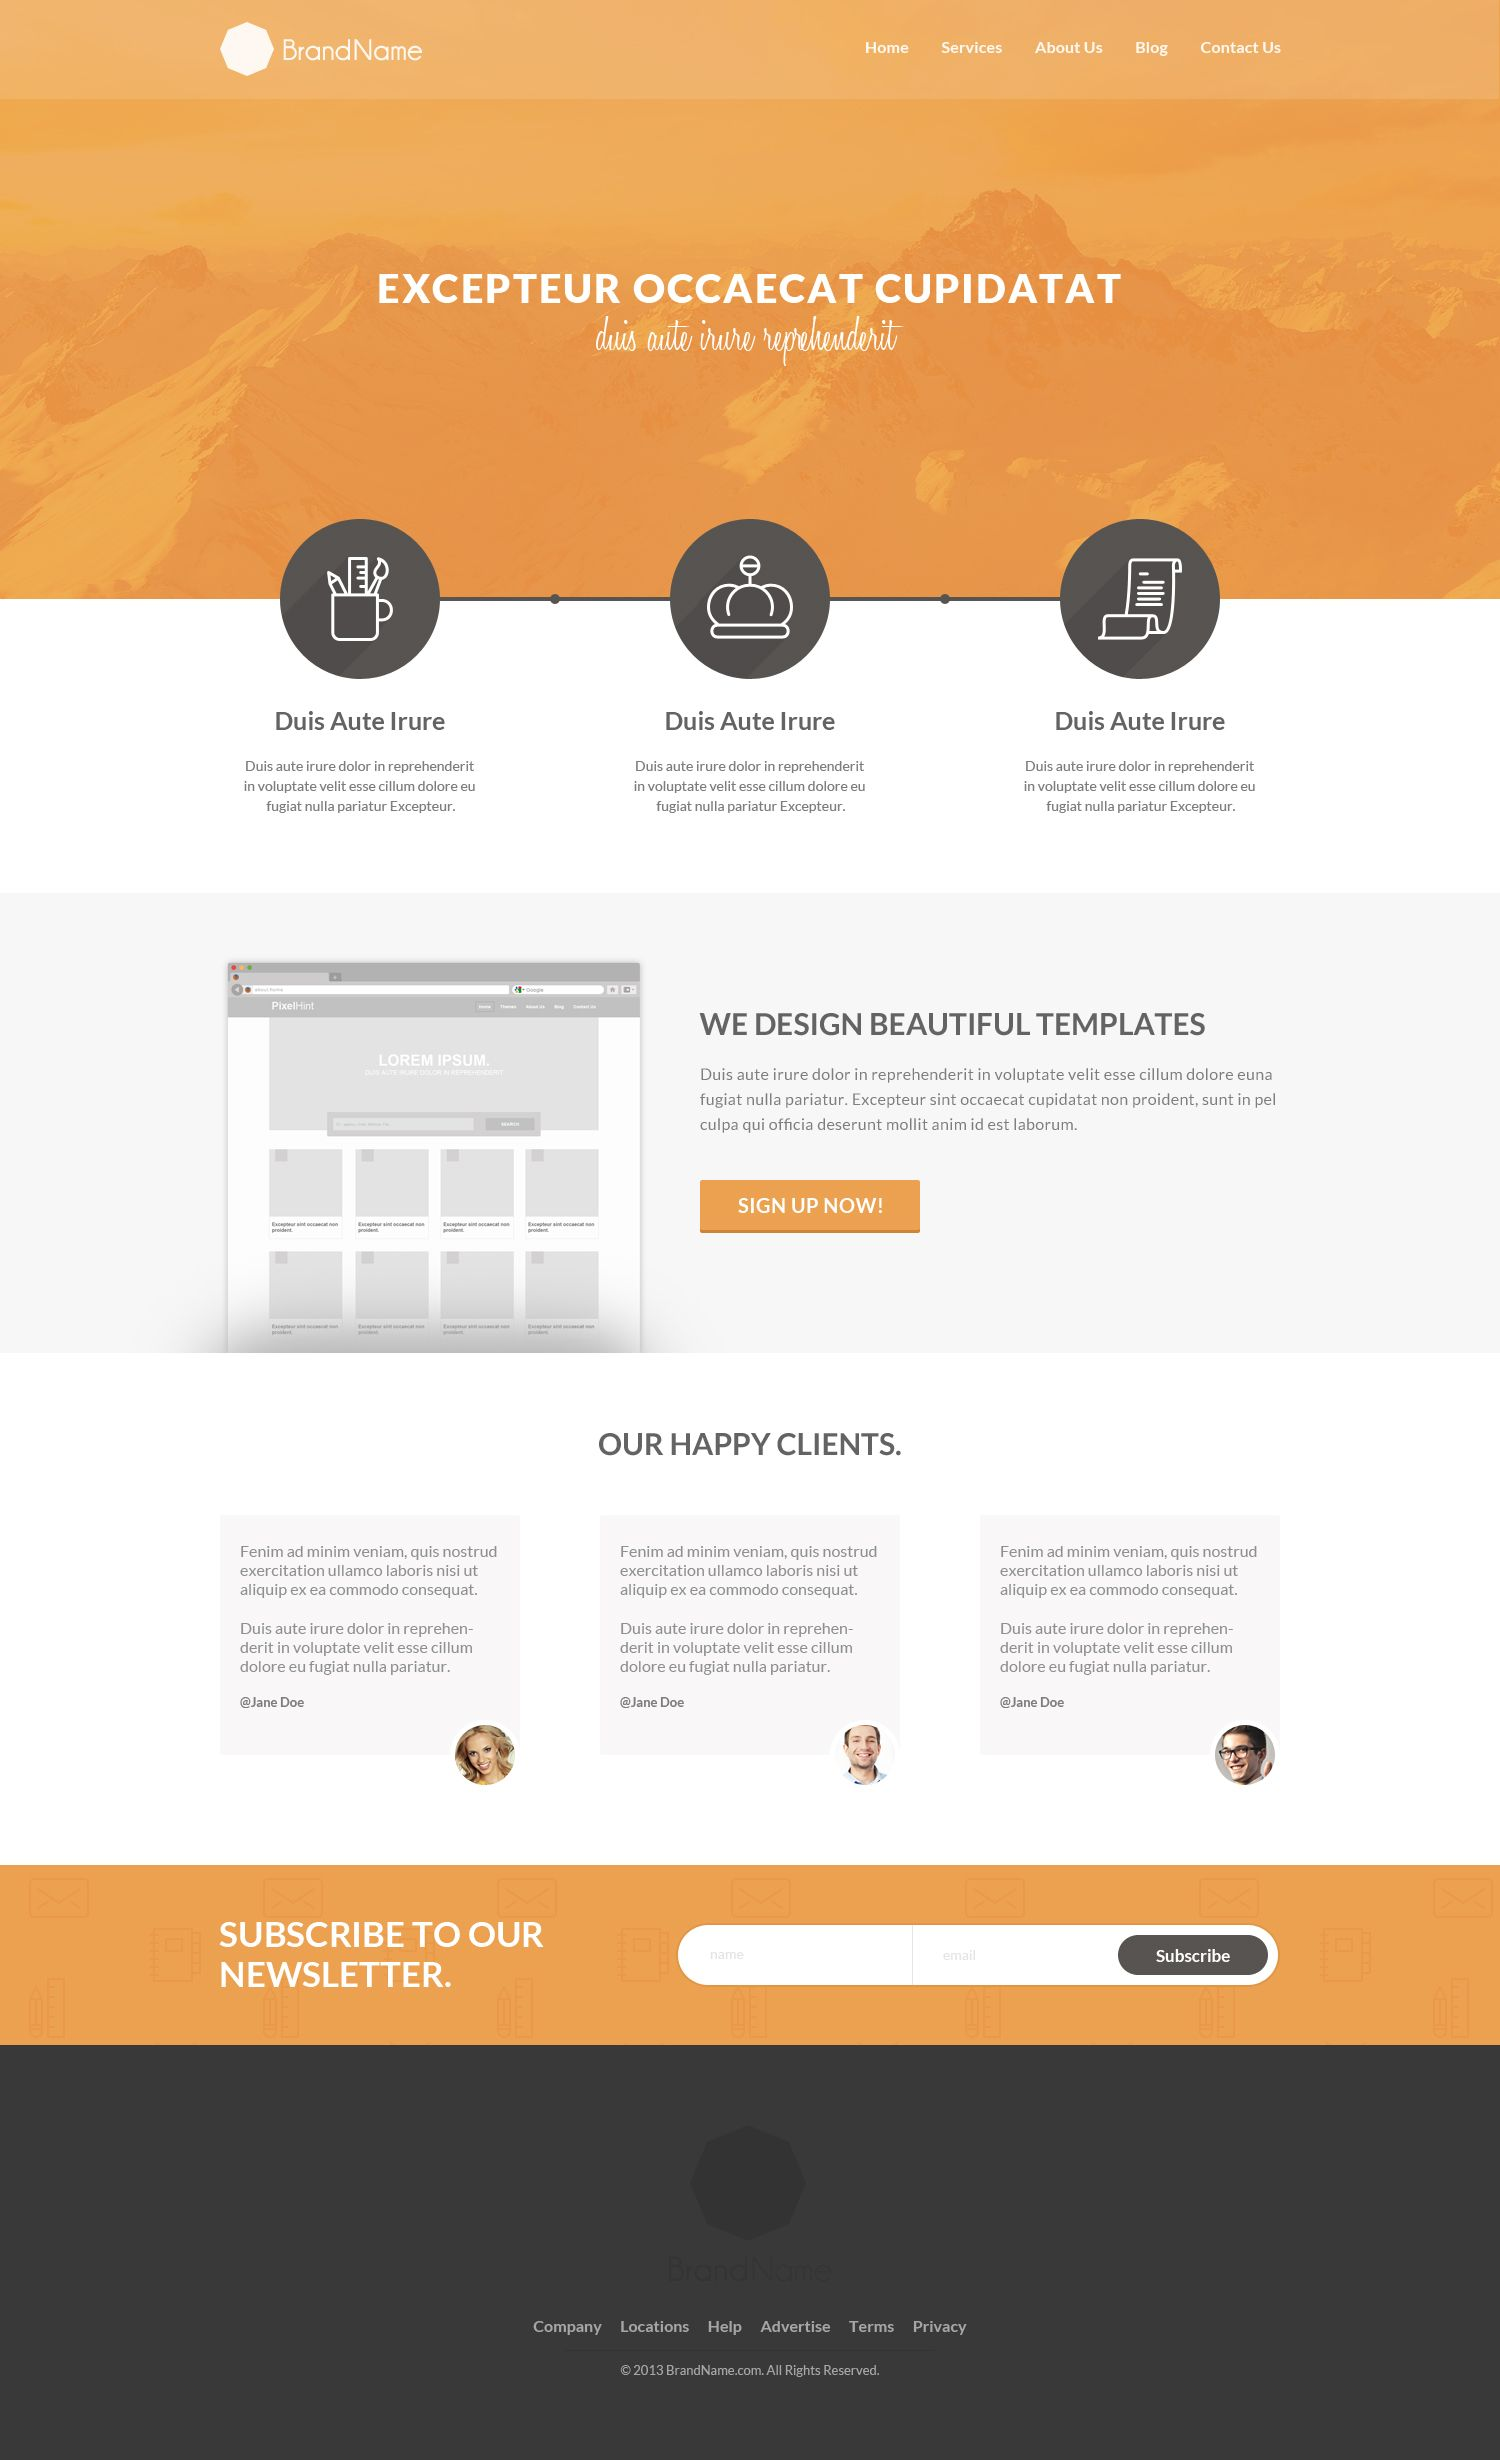 Web Design Tutorial Learn How To Design A Website From Scratch In